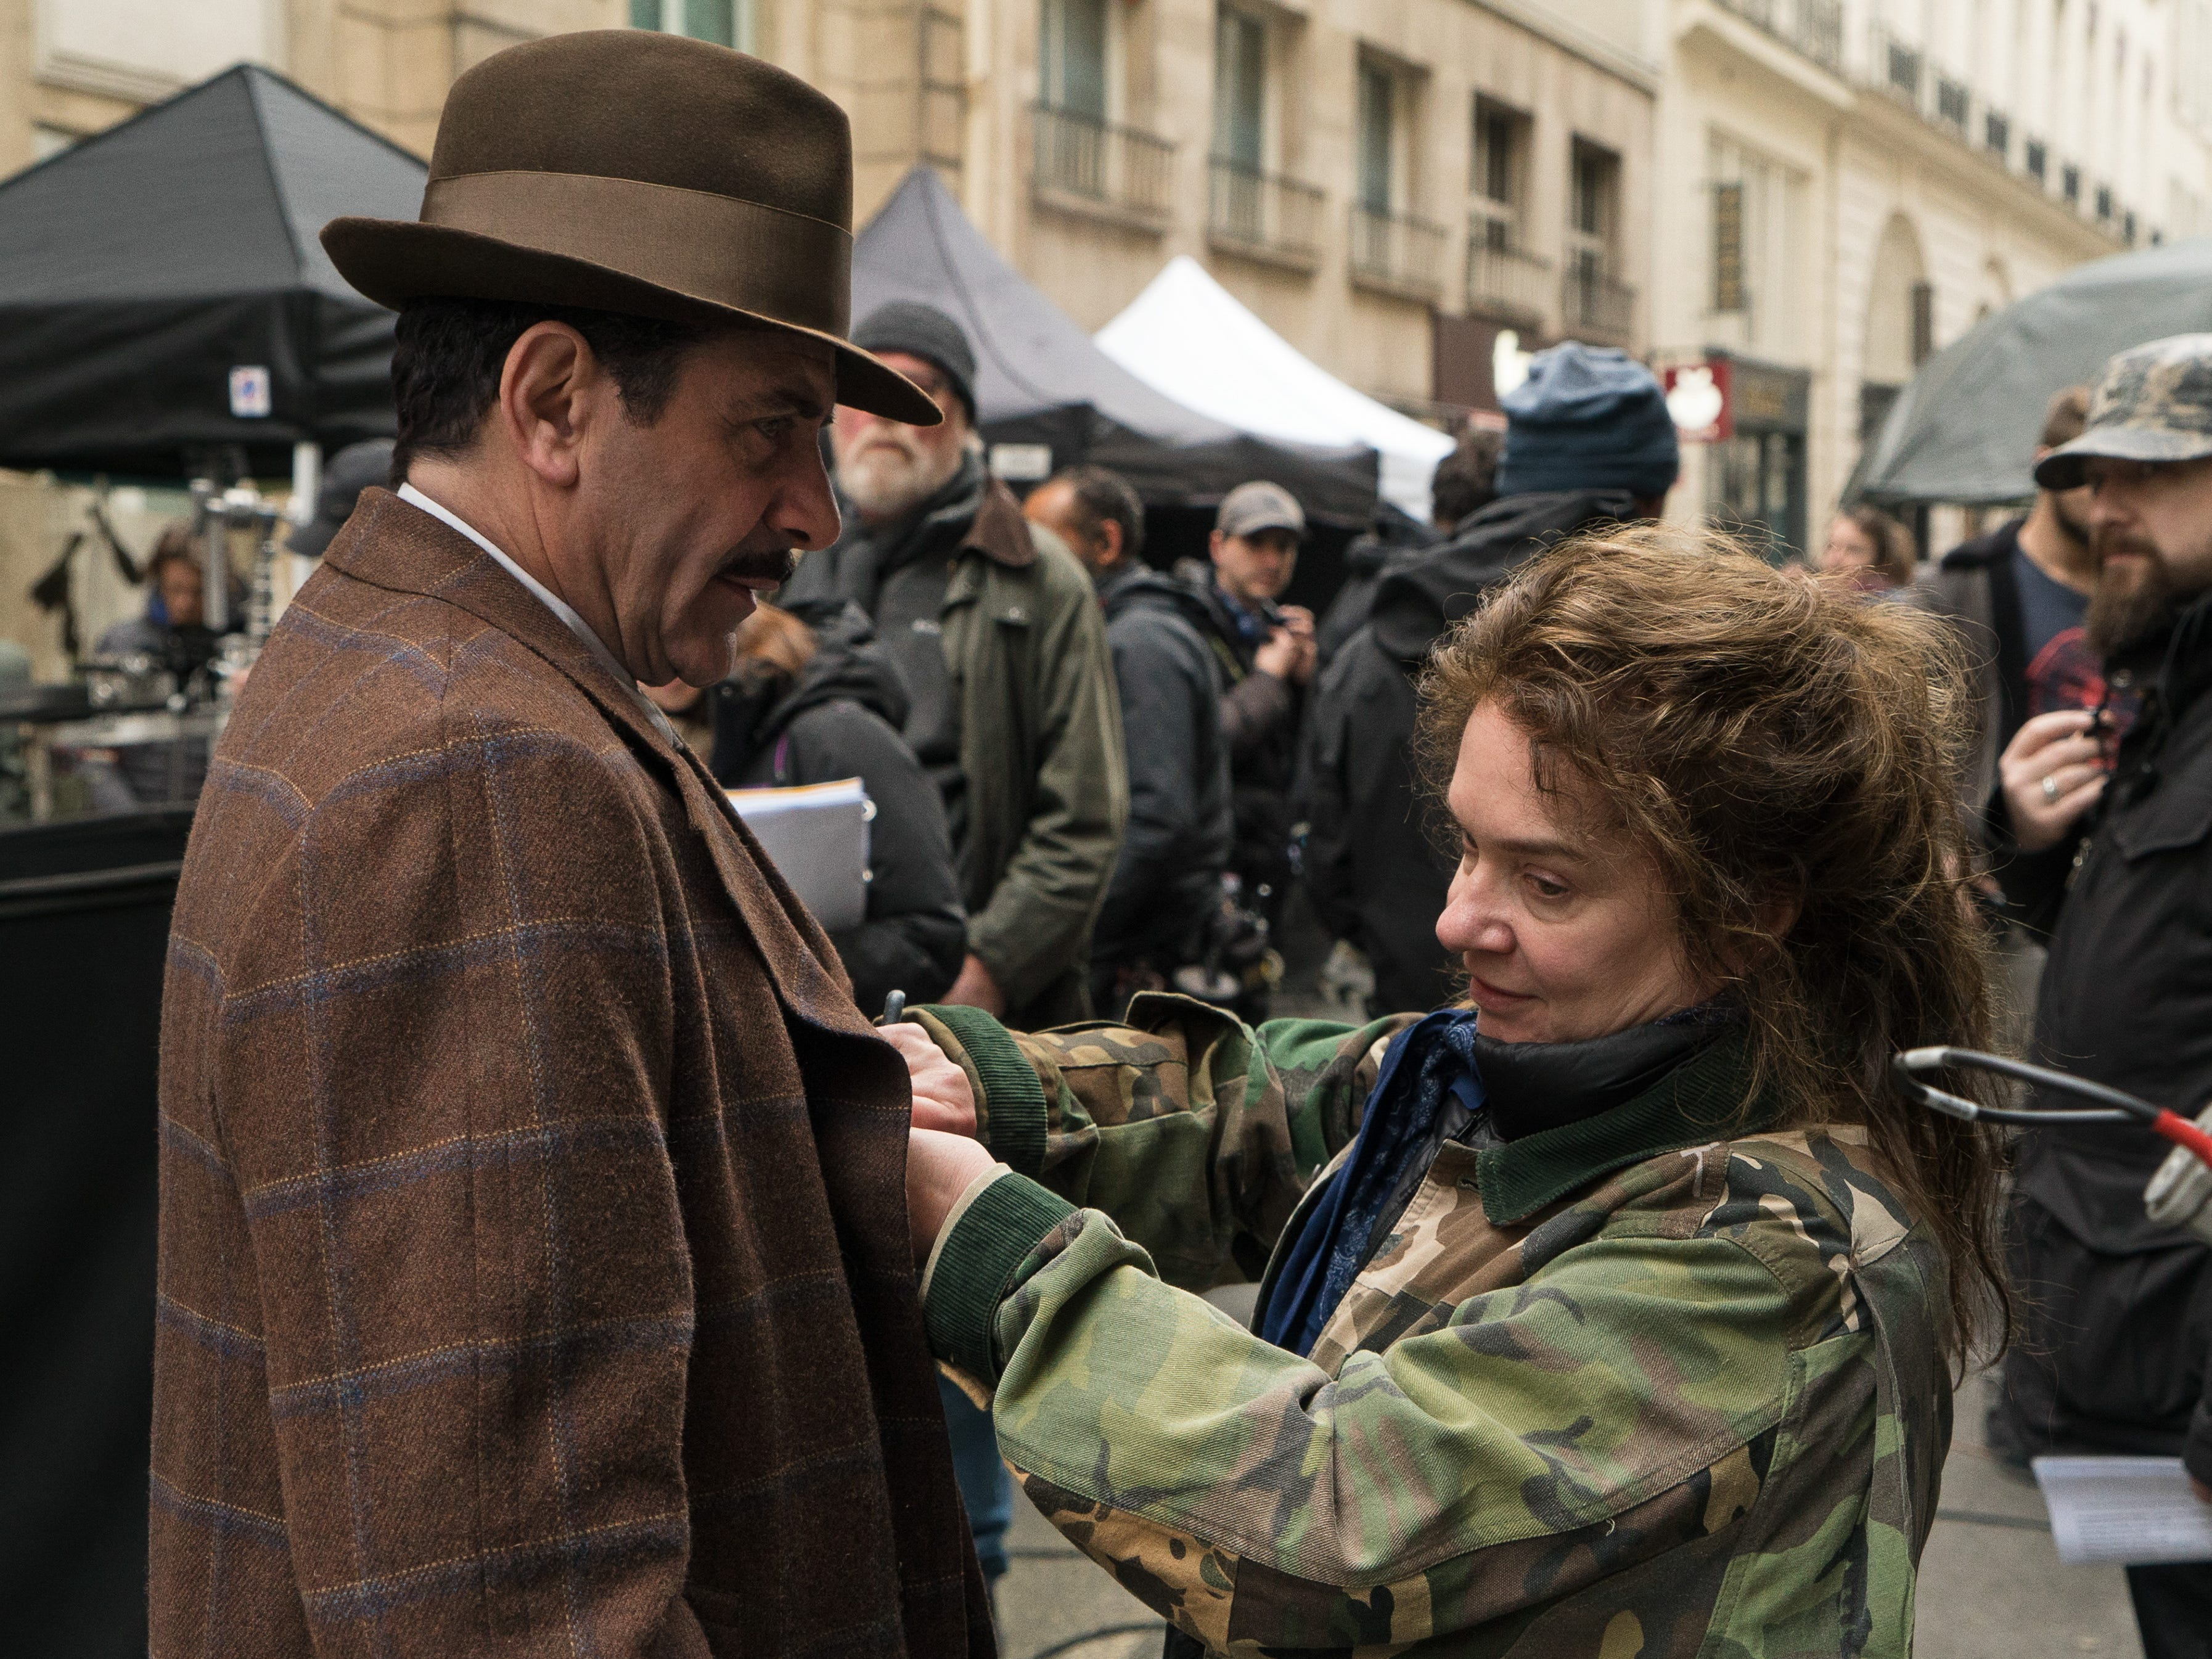 """Behind-the-scenes of the filming season two of the Amazon Prime Video series """"The Marvelous Mrs. Maisel,"""" starring Tony Shalhoub as Abraham """"Abe"""" Weissman, the title character's father."""